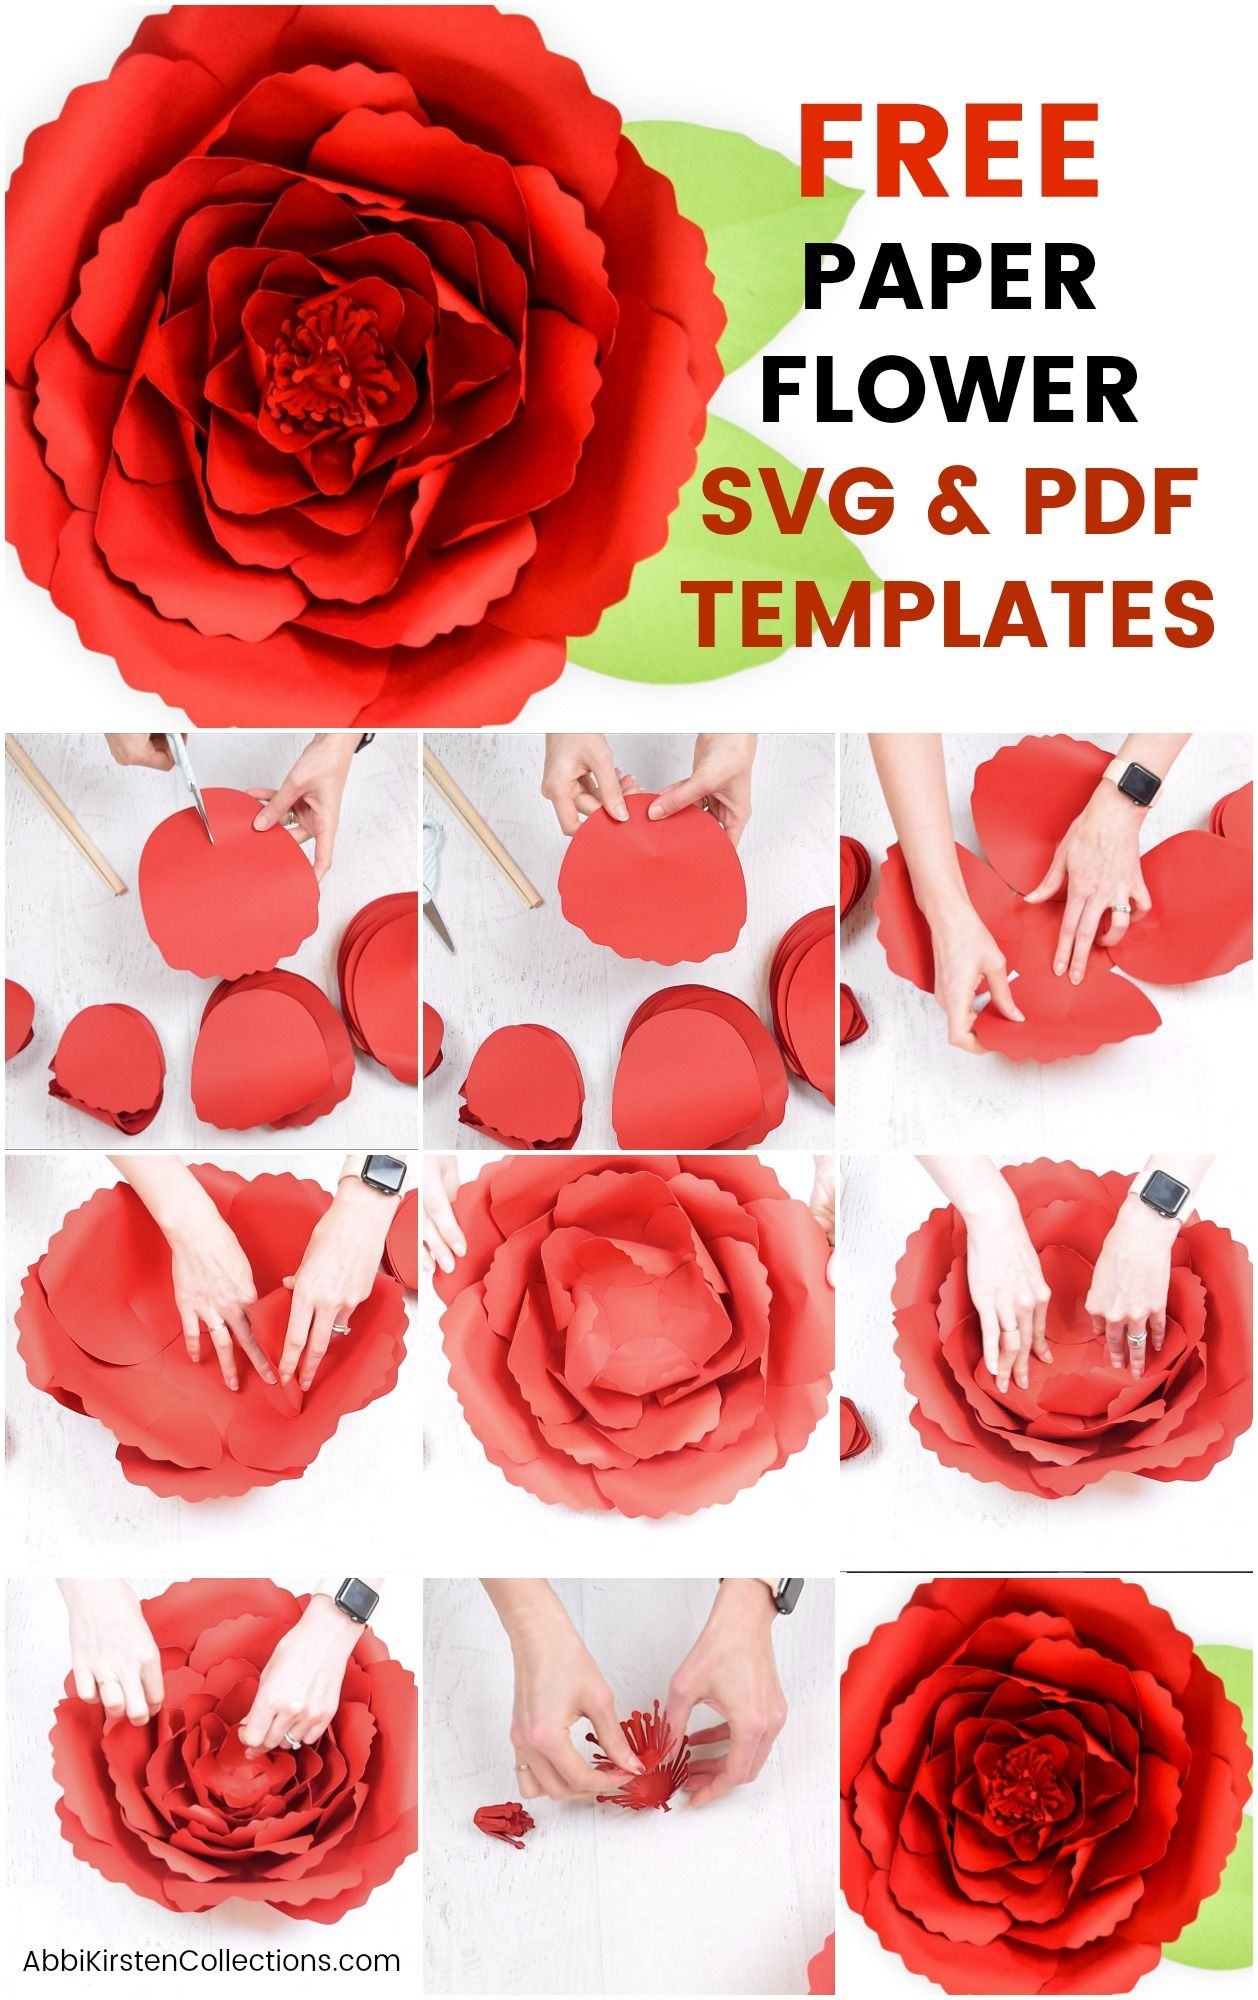 Free Paper Flower Templates How To Make Giant Poppy Paper Flowers Free Paper Flower Templates Paper Flower Template Paper Flowers